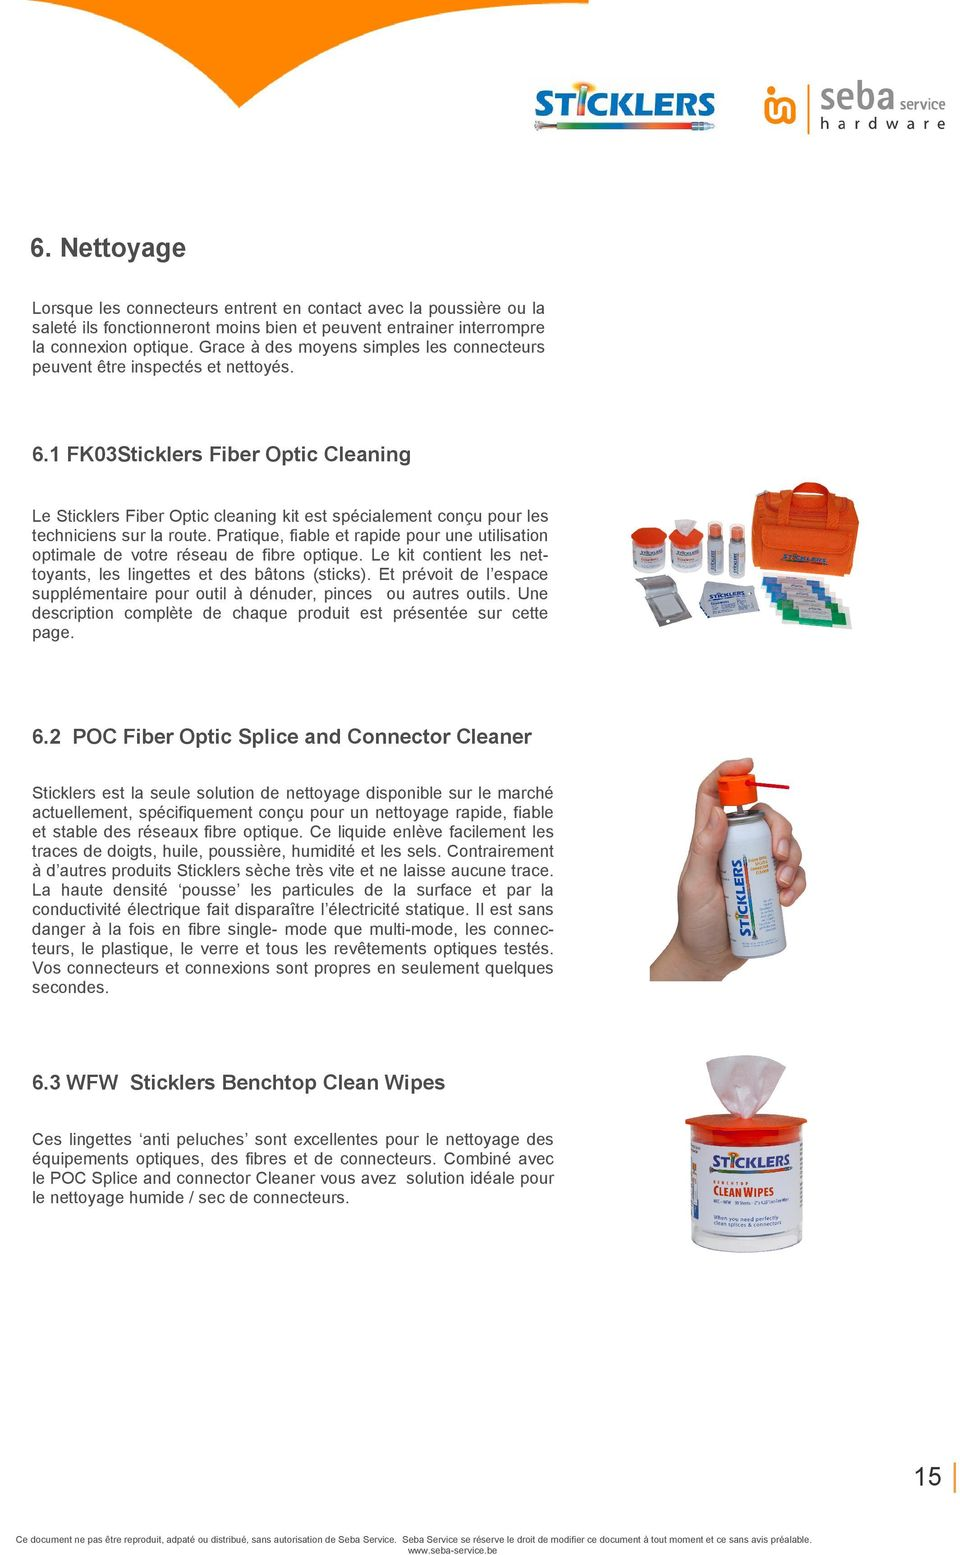 1 FK03Sticklers Fiber Optic Cleaning Le Sticklers Fiber Optic cleaning kit est spécialement conçu pour les techniciens sur la route.